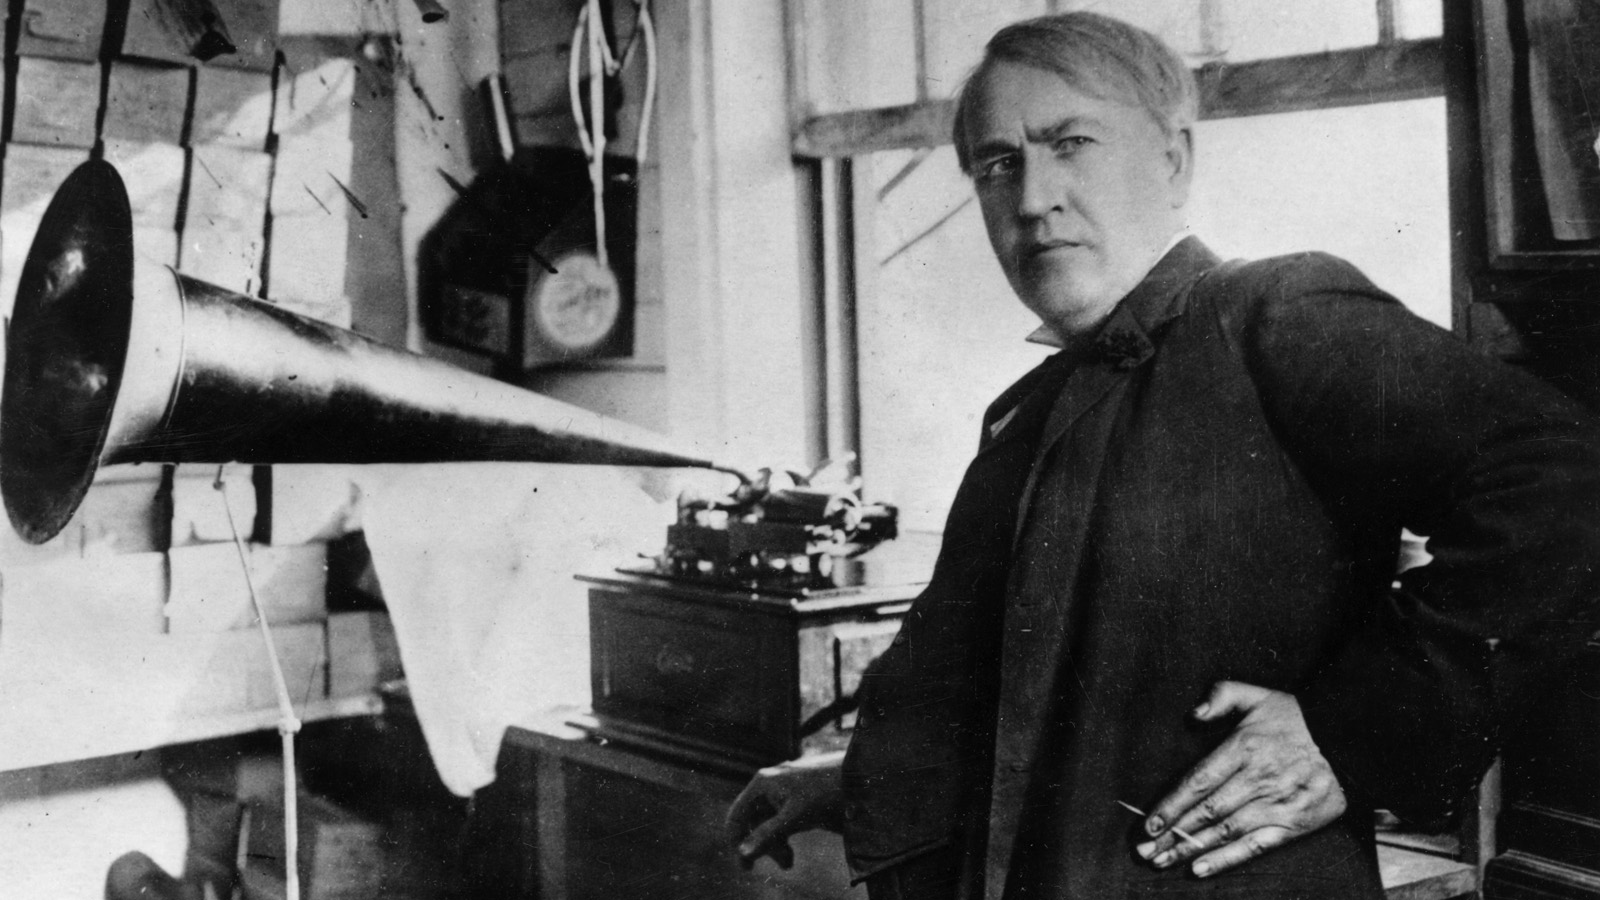 About 140 years before everyone became a DJ, Thomas Edison accidentally invented the phonograph. Photo: Keystone/Getty Images